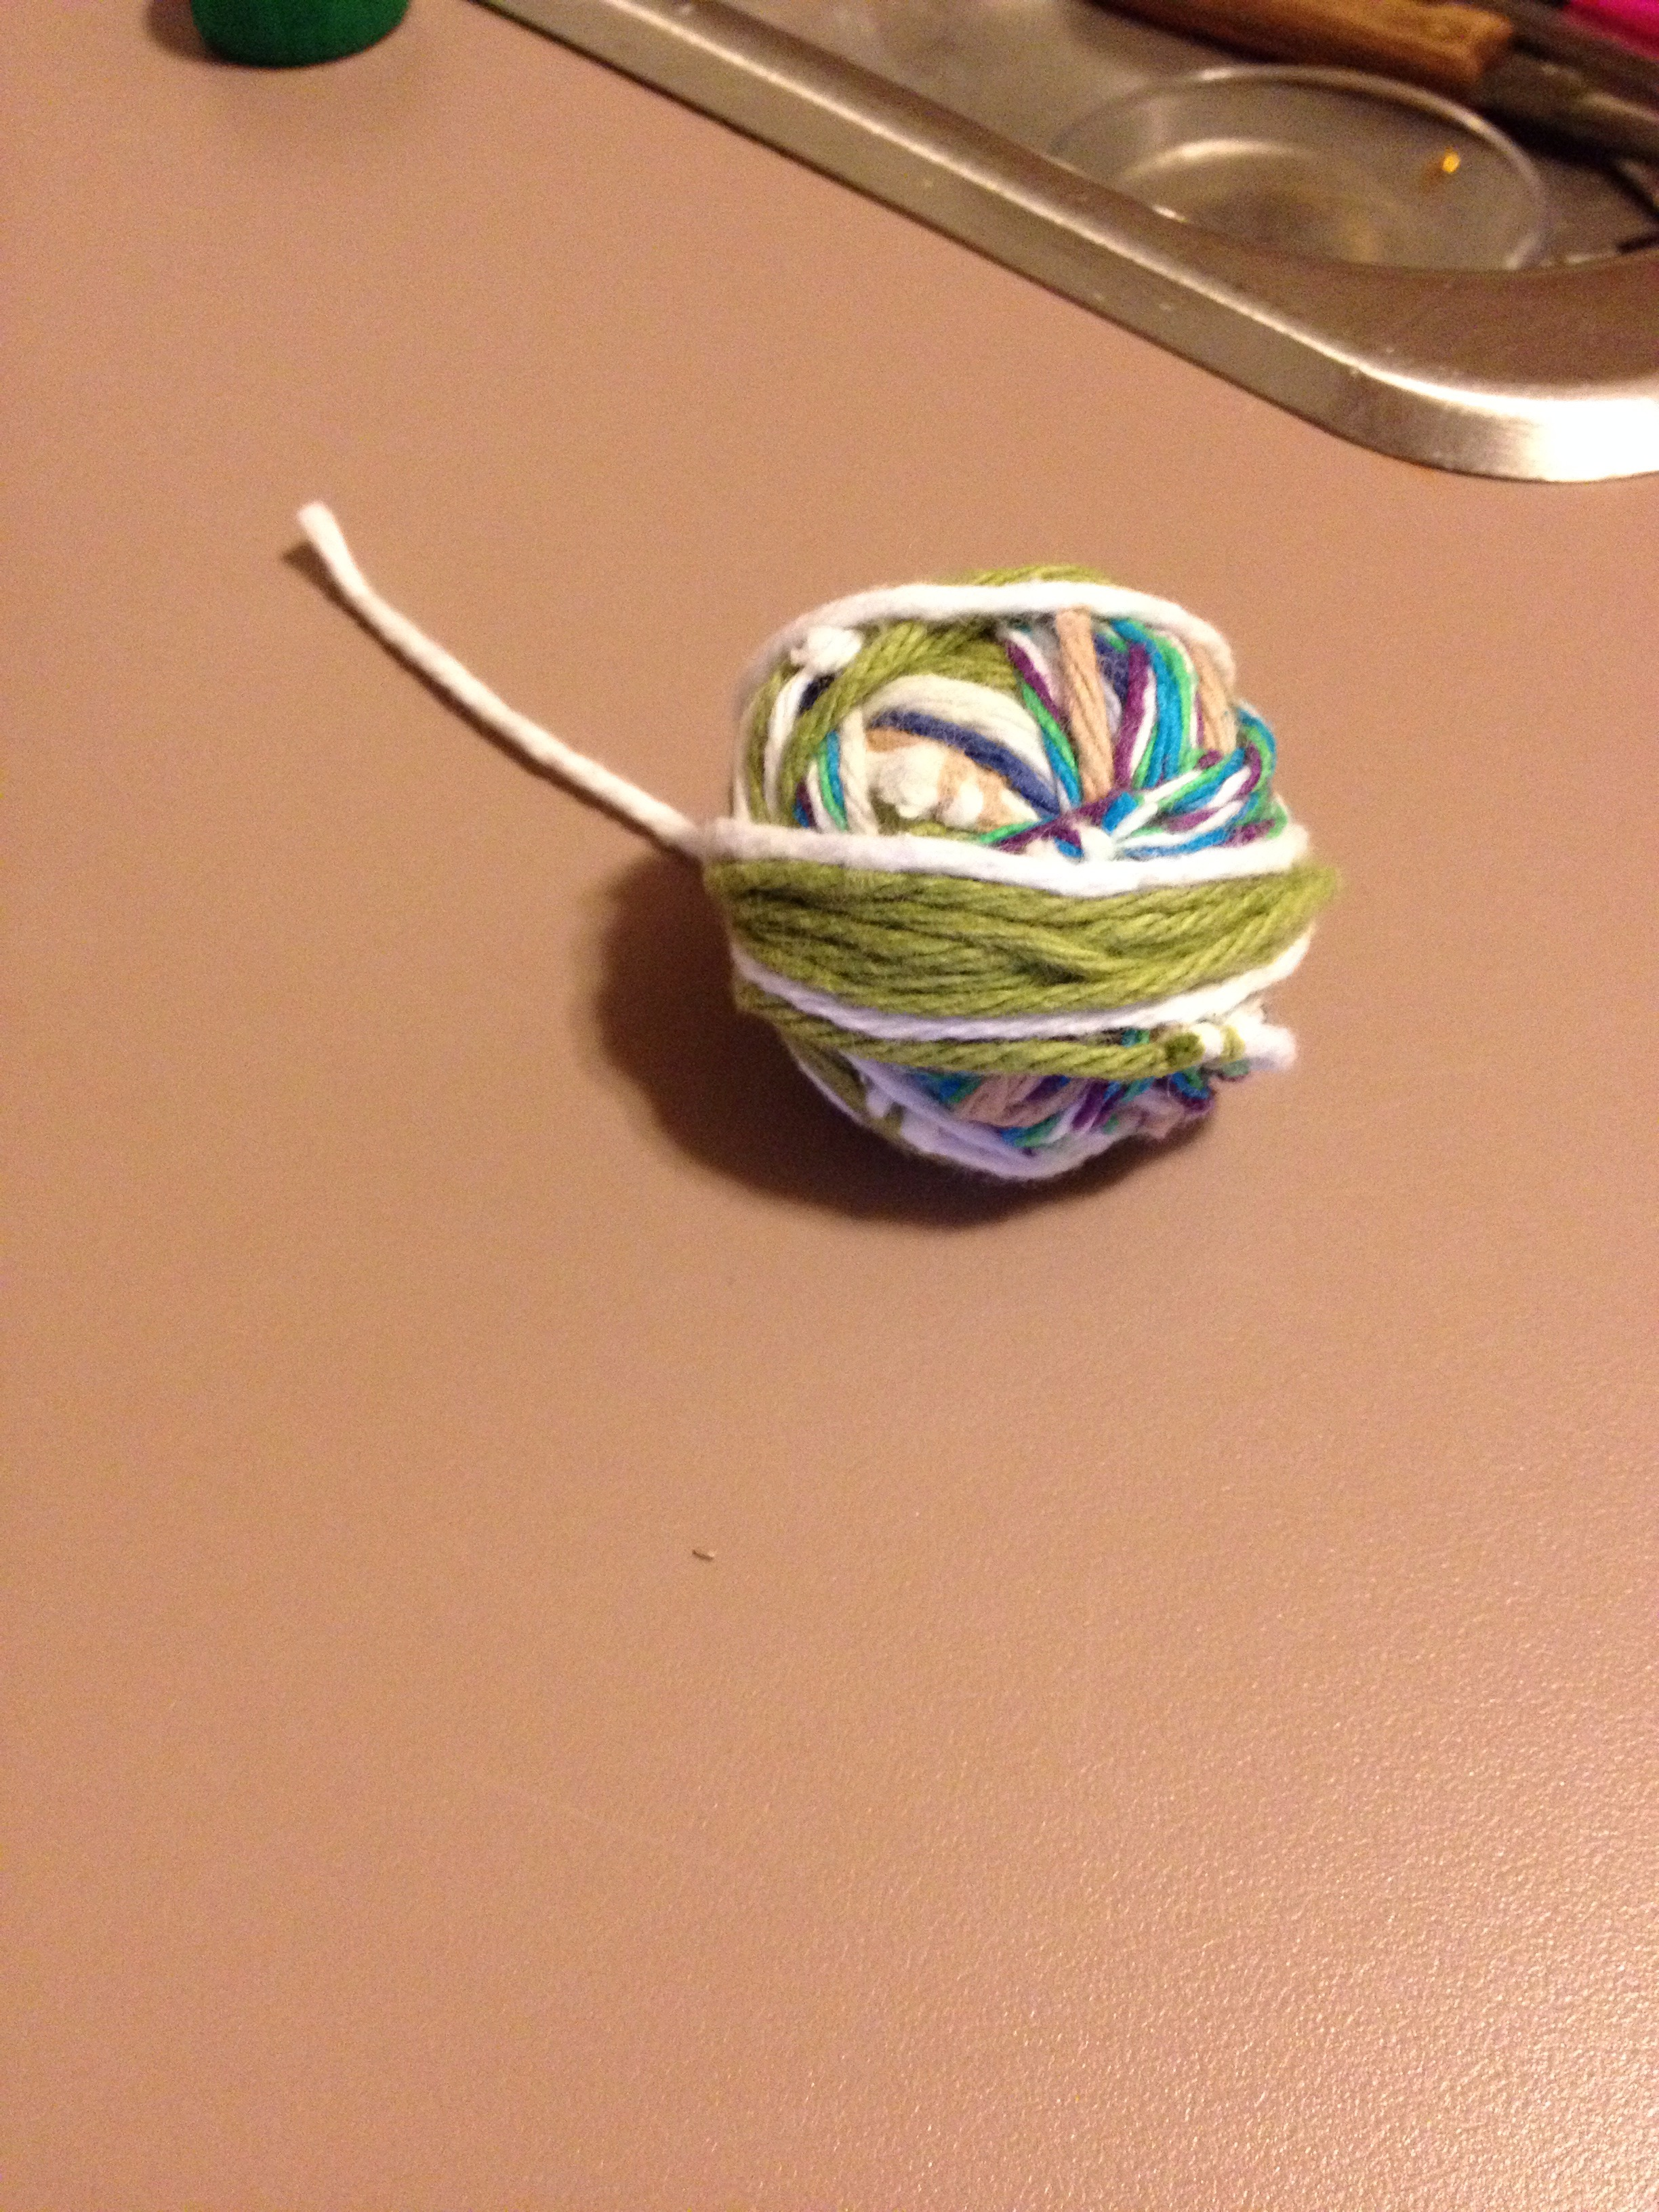 Magic Ball For Knit Or Crochet